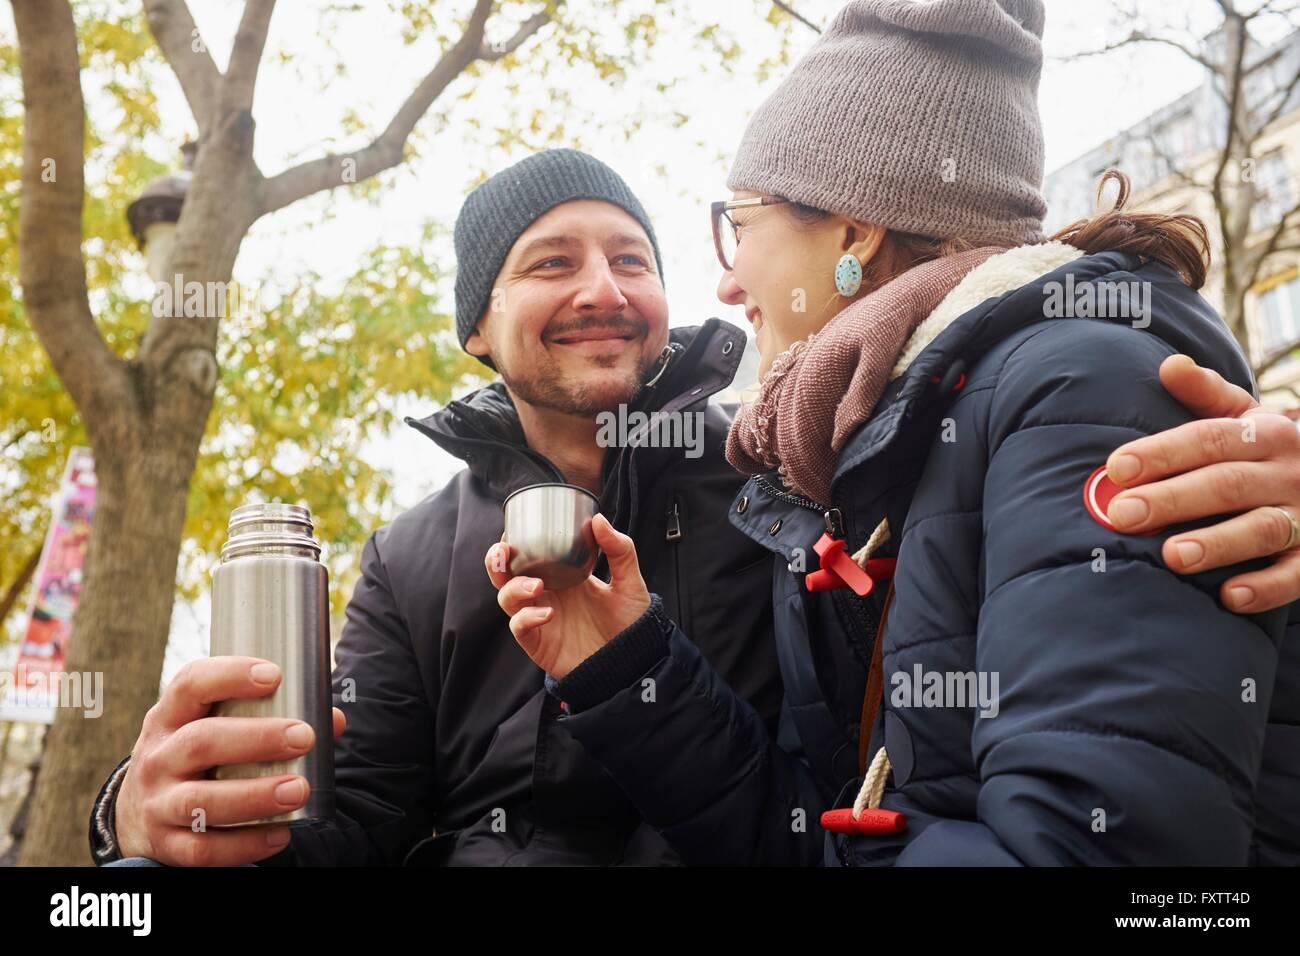 Couple wearing knit hats holding drinks flask in park - Stock Image